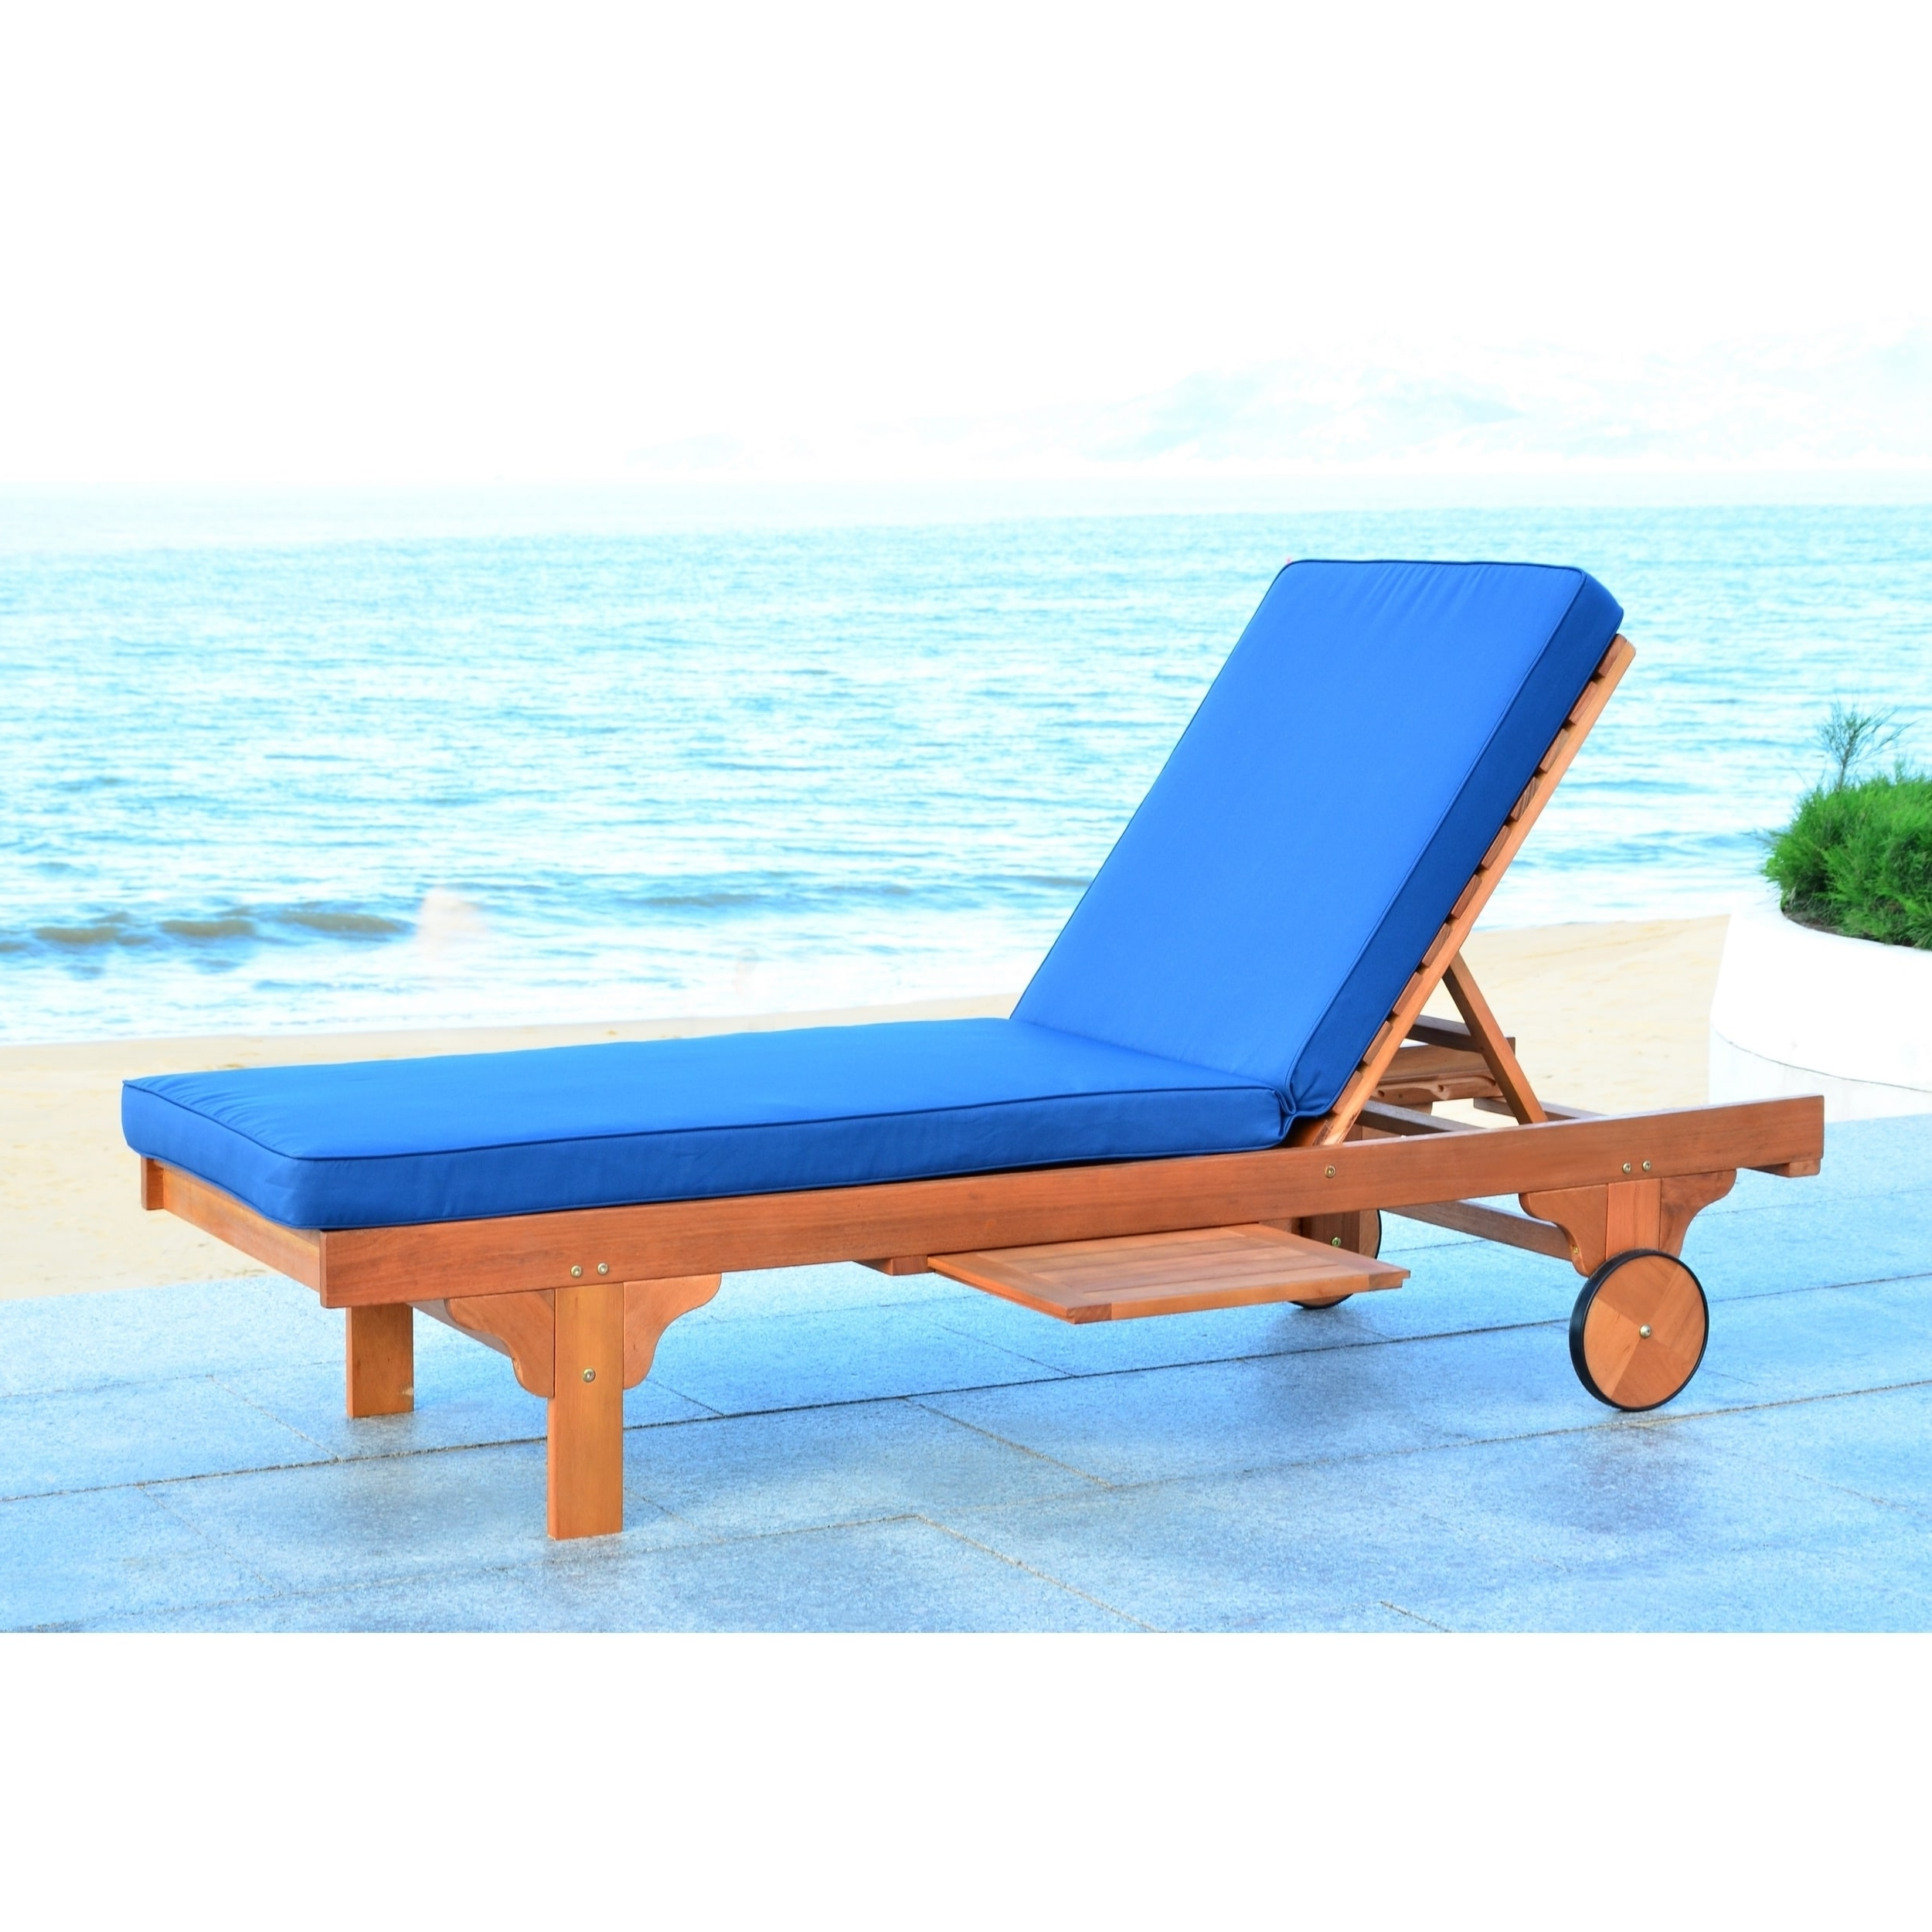 Safavieh Outdoor Living Newport Brown/ Navy Adjustable Chaise Pertaining To Most Recent Newport Chaise Lounge Chairs (View 9 of 15)